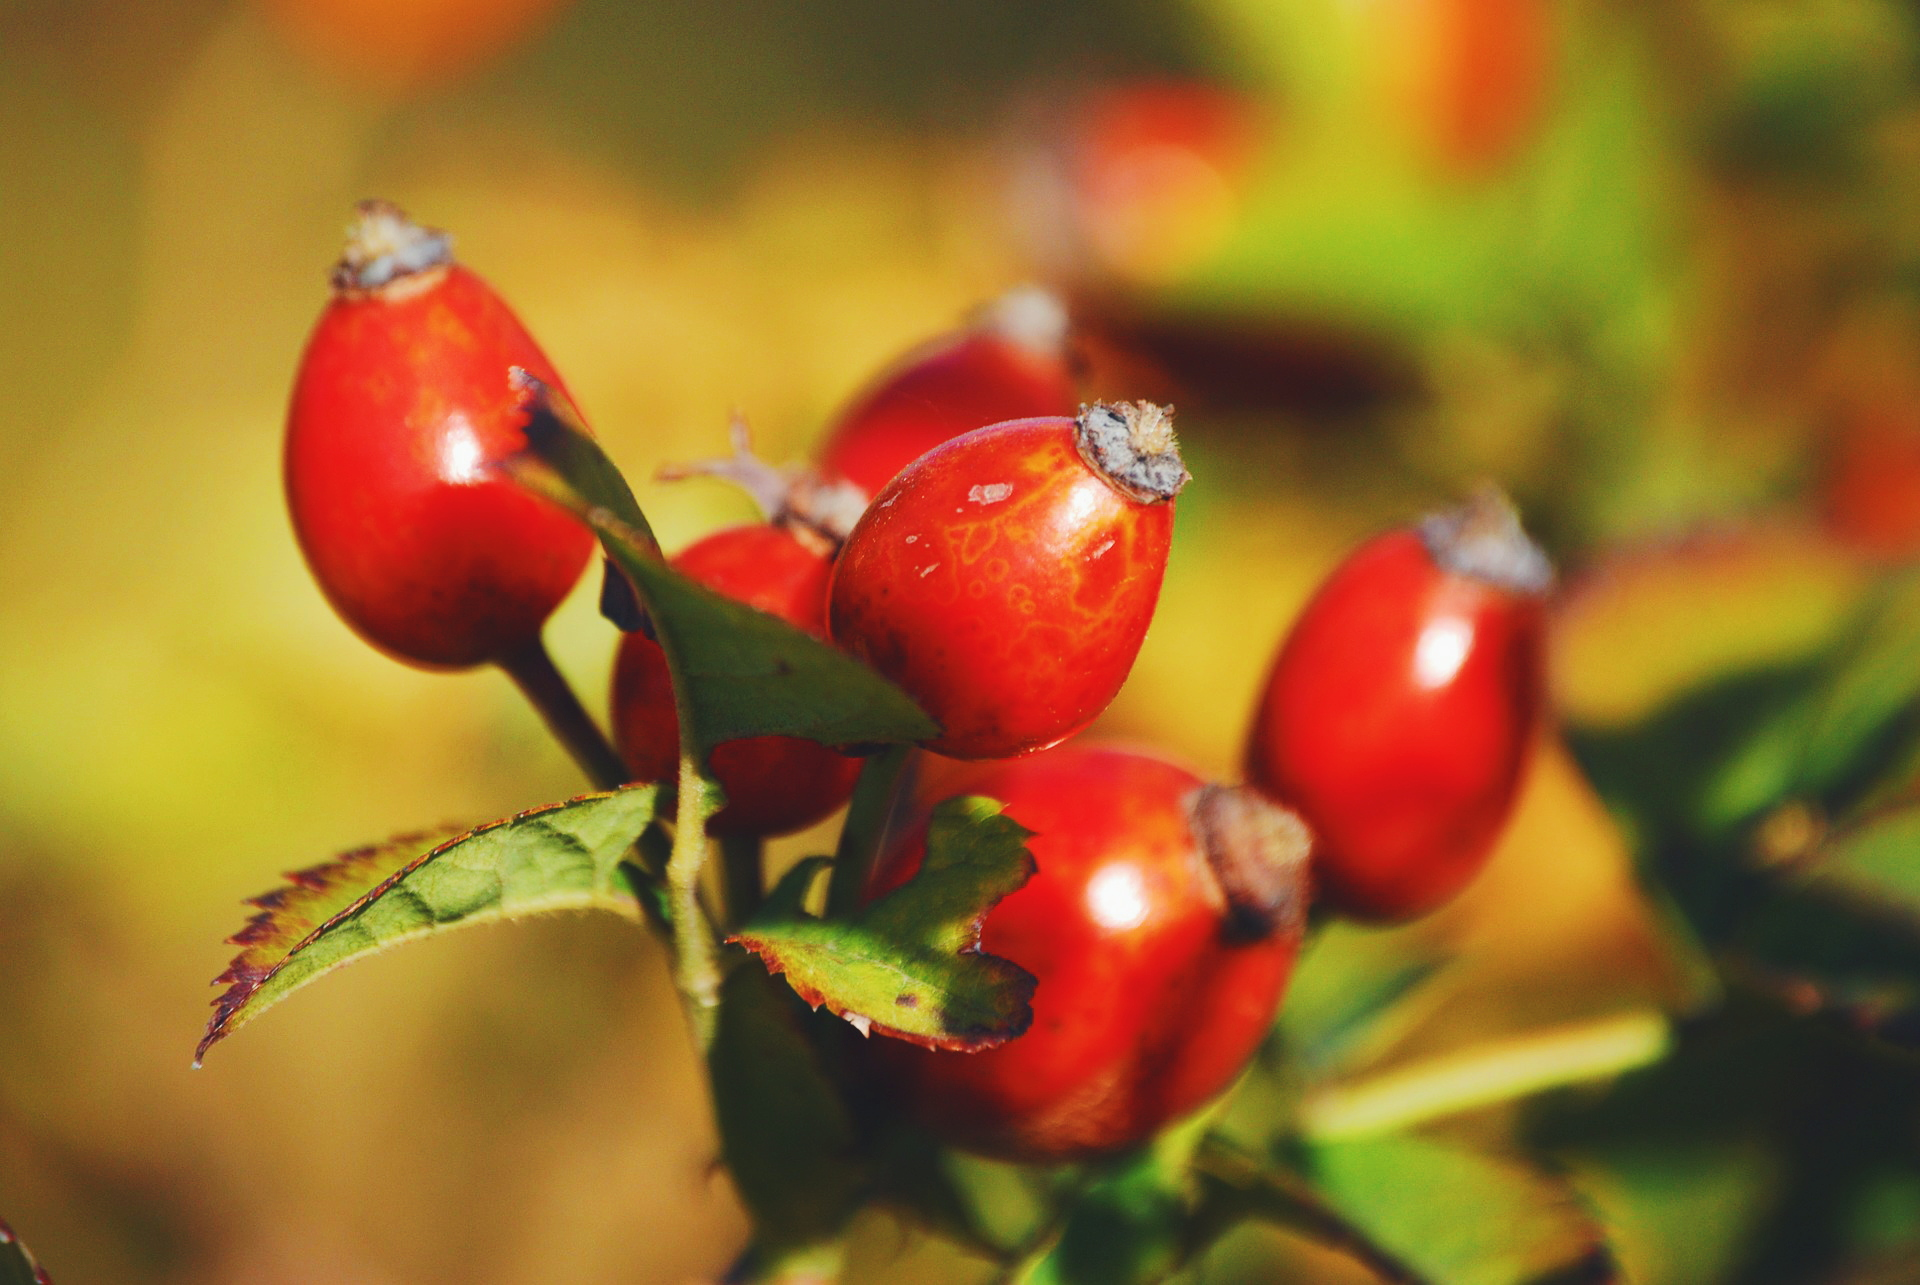 Rosehip Oil for Acne Scars: Does it Really Work?